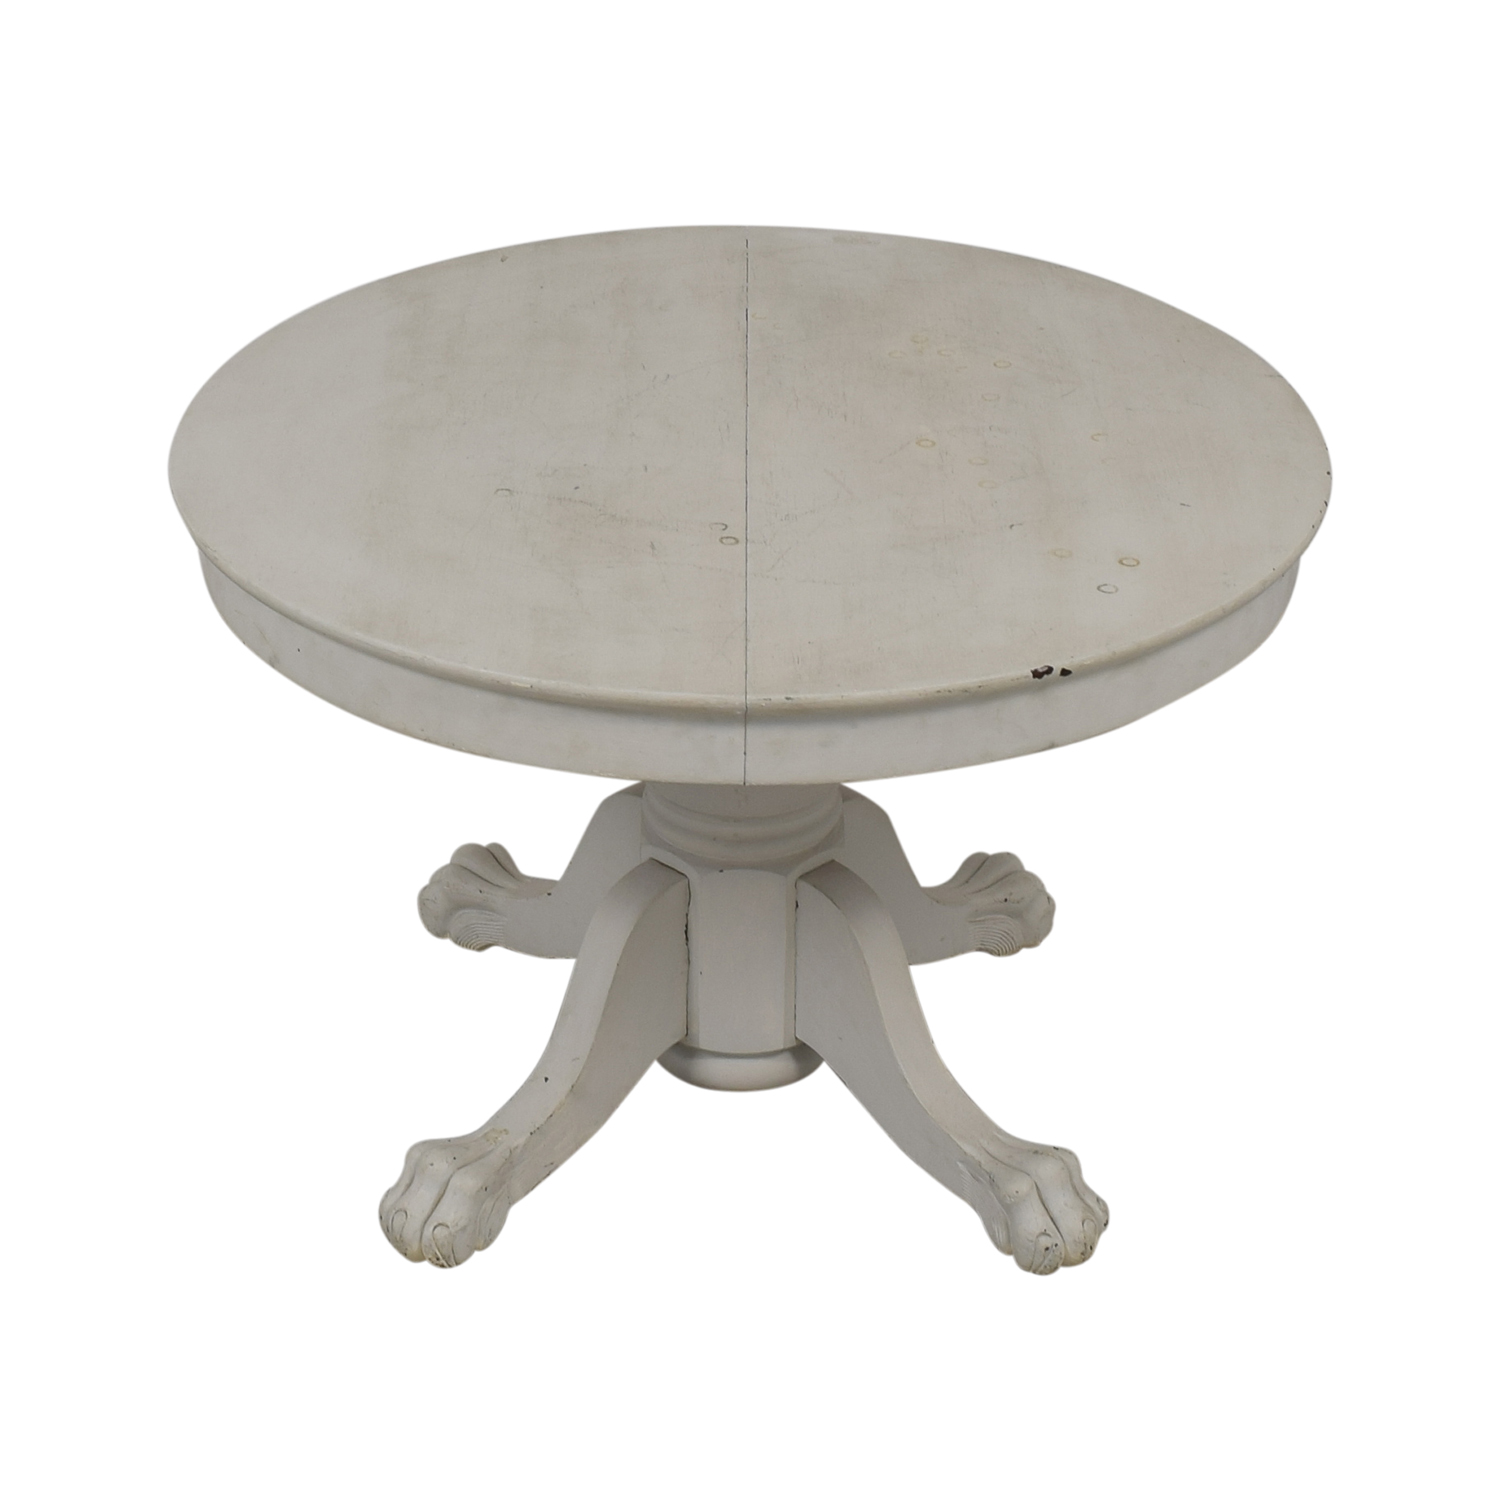 American Country Distressed Round White Oak Table used